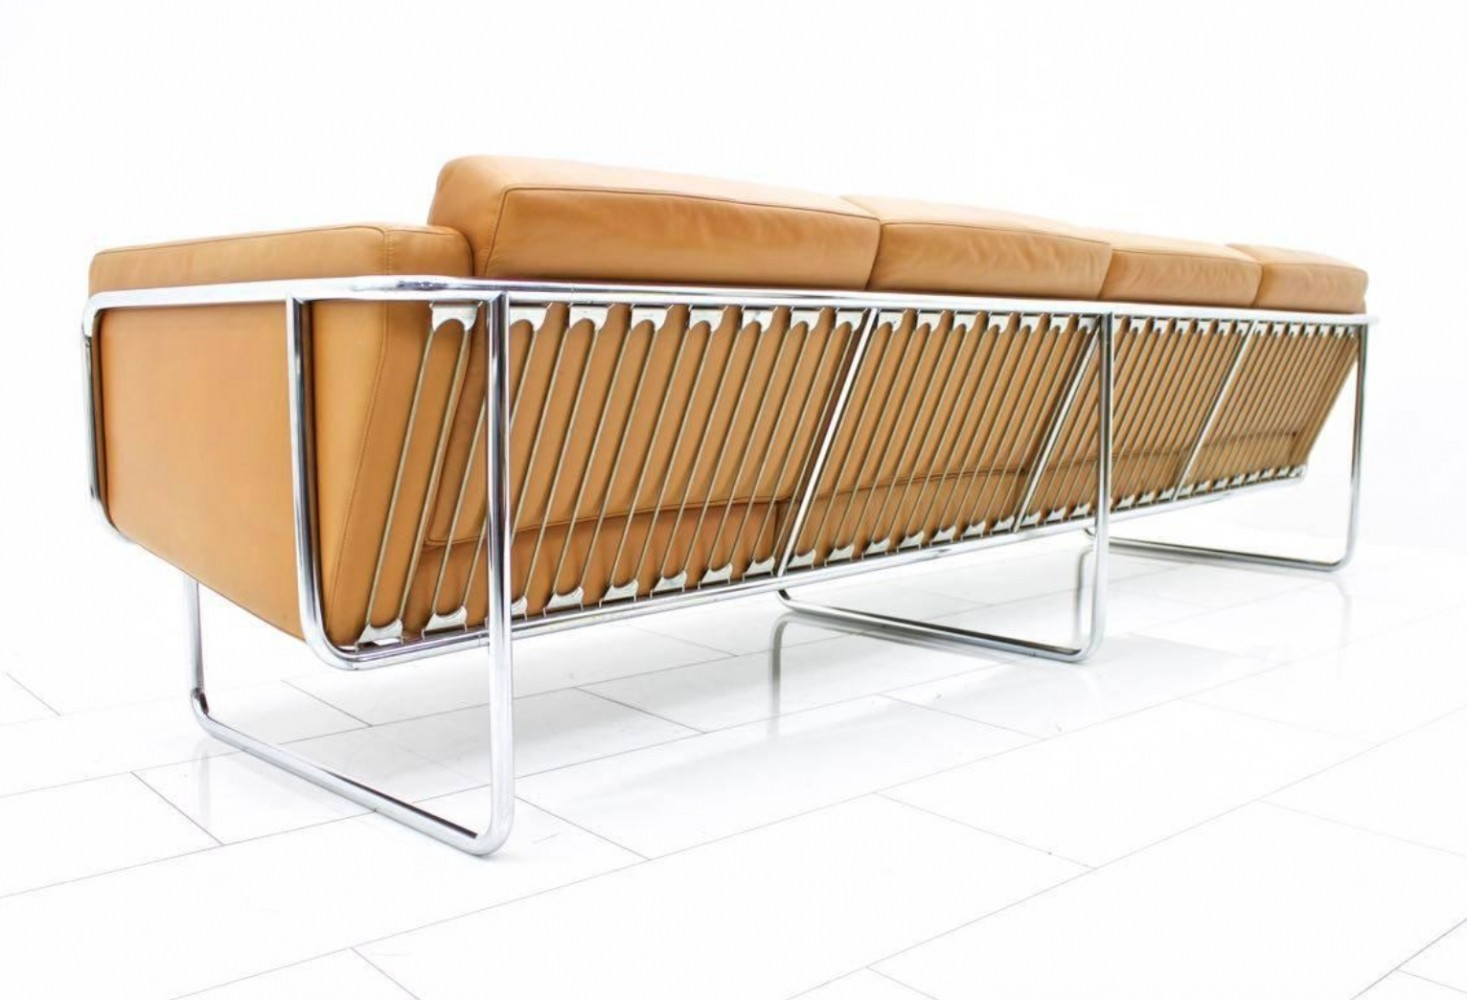 Rare Four-Seat Leather Sofa by Hans Eichenberger for Strässle, Switzerland